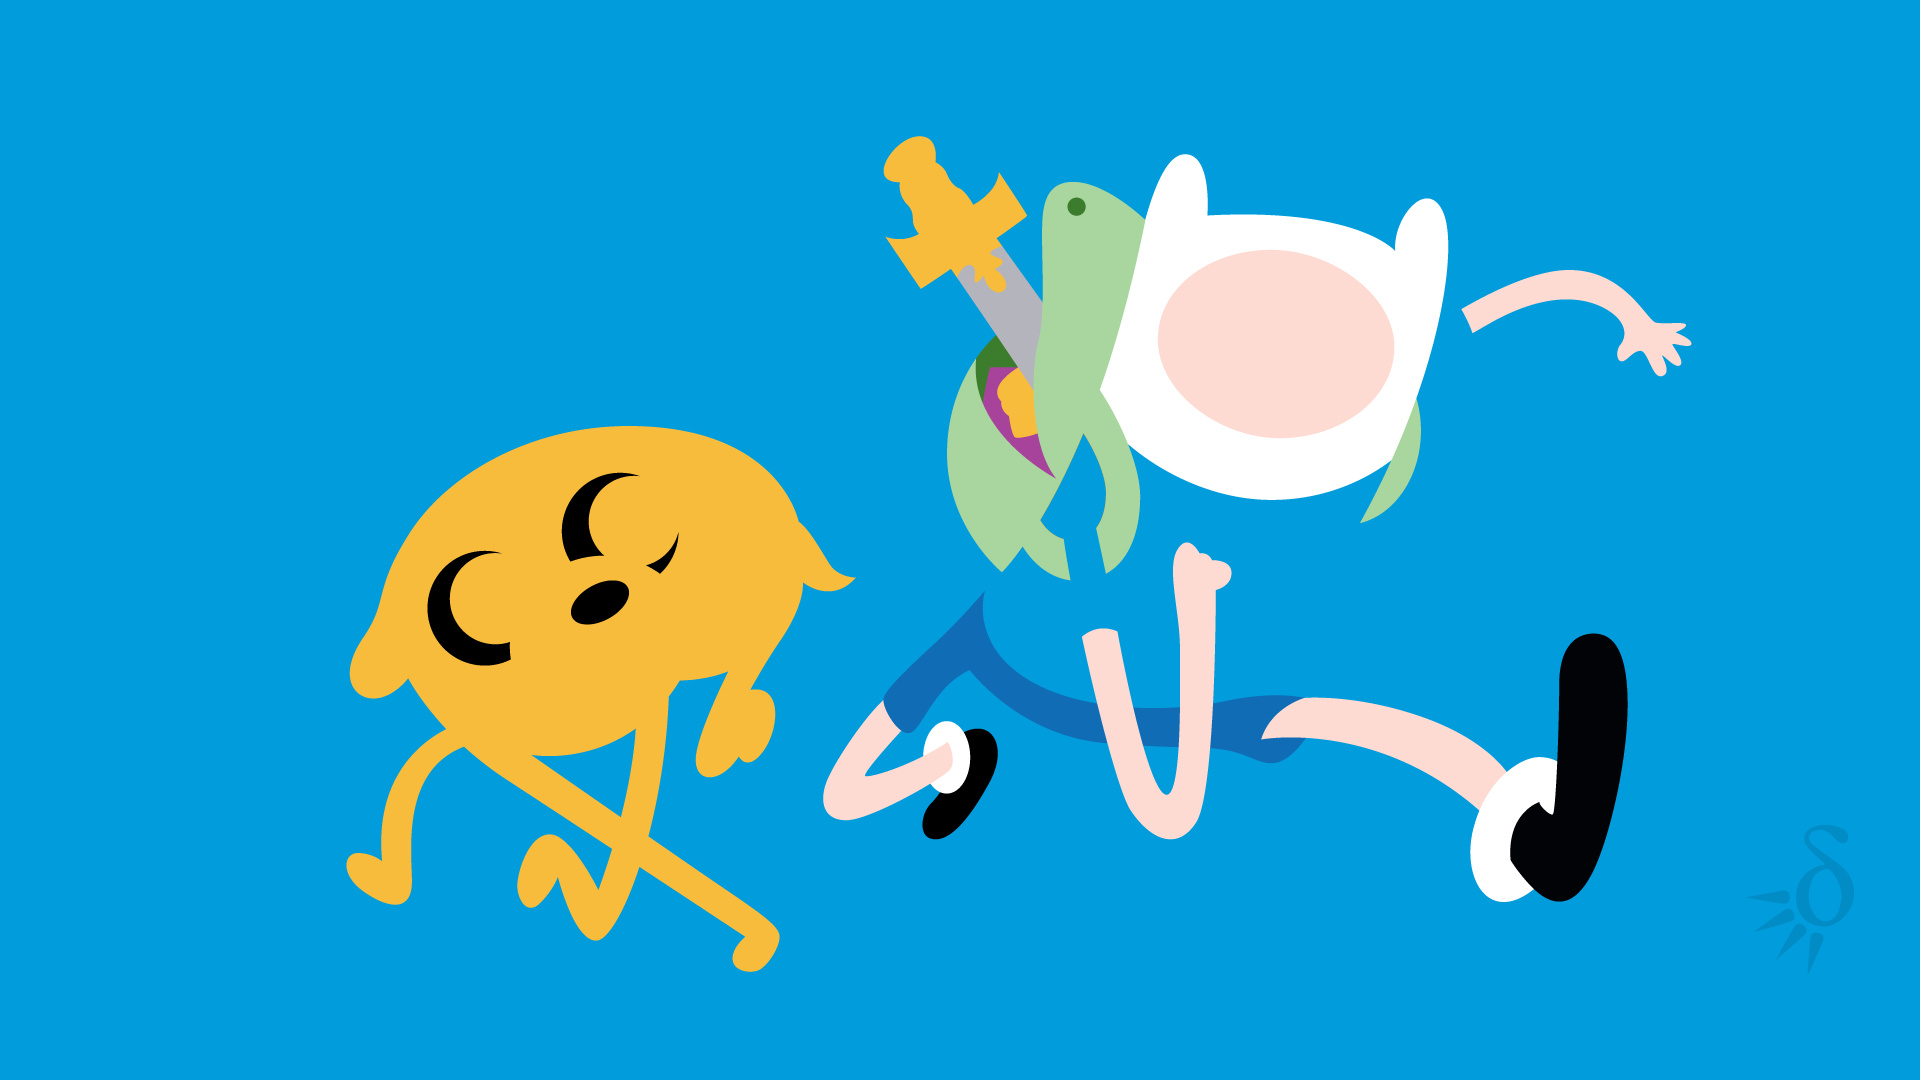 Adventure Time HD Wallpapers   Wallpaper High Definition High 1920x1080